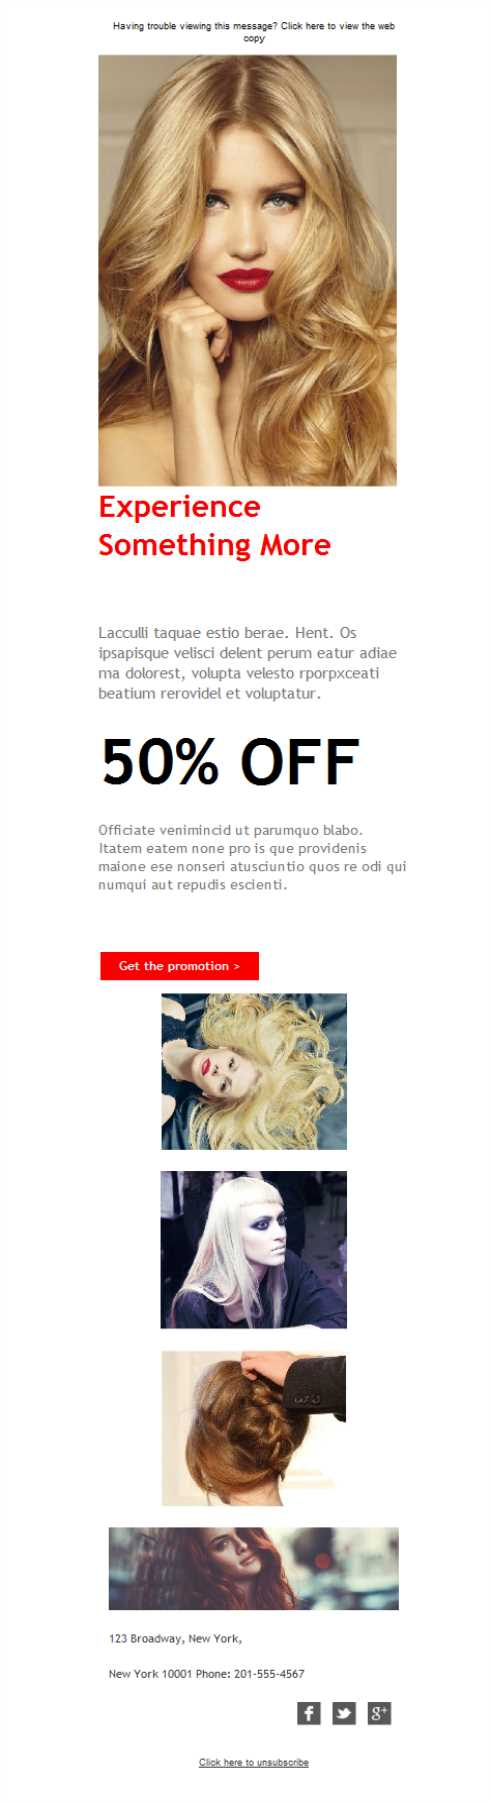 Templates Emailing Hair Salon Experience Sarbacane